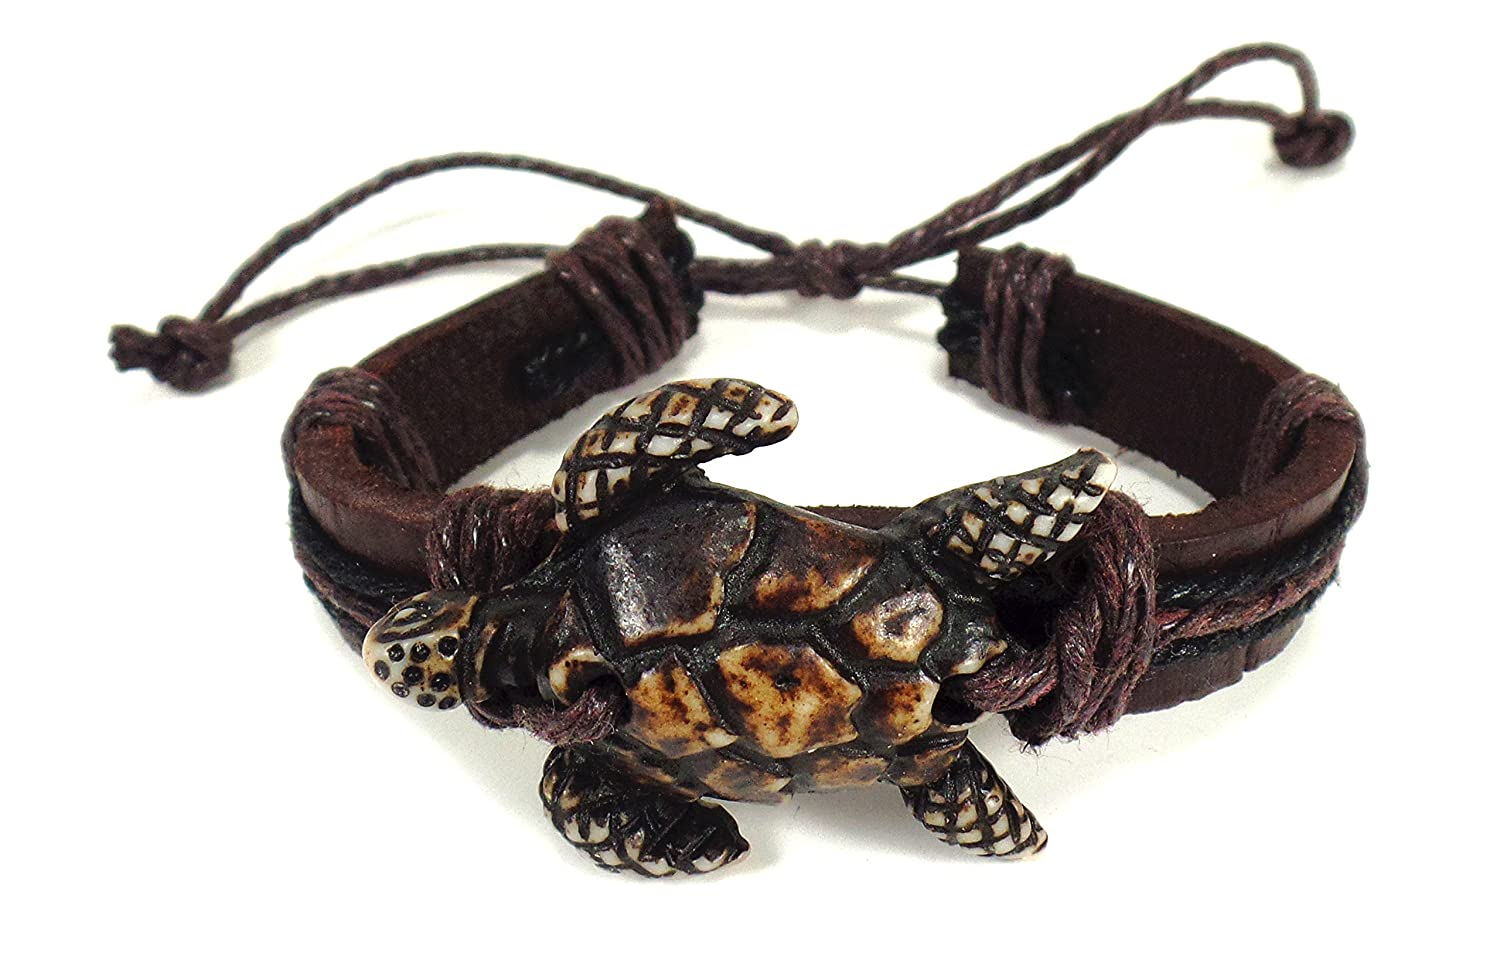 handmade stones sea in cultures signifies longevity bs details swimming features creation leather the btq lightweight many turtle bracelets brass and determination adorable beading products this aeravida bracelet